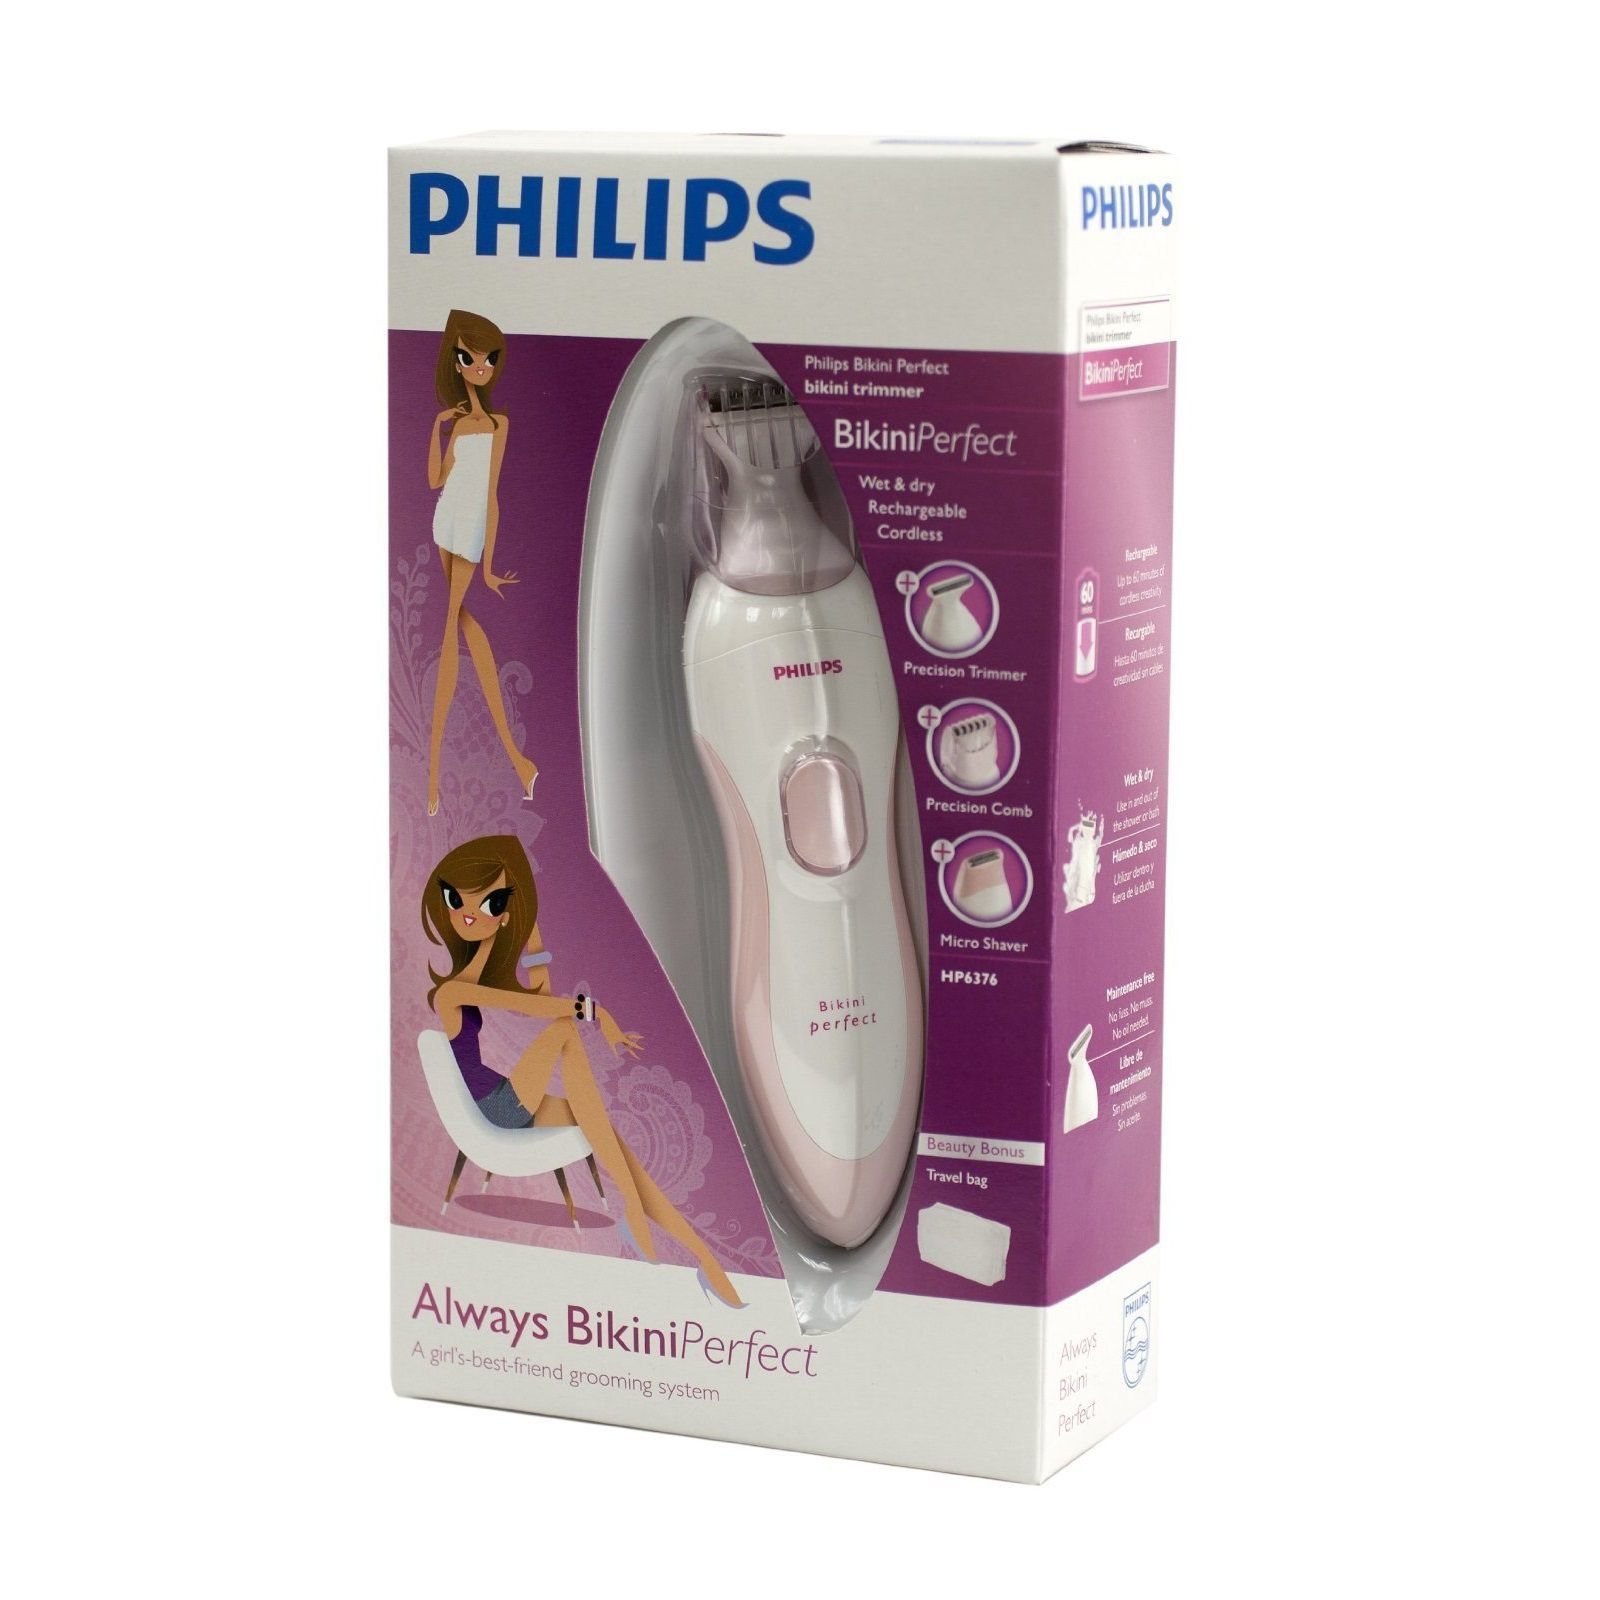 philips-bikini-shaver-pecker-poking